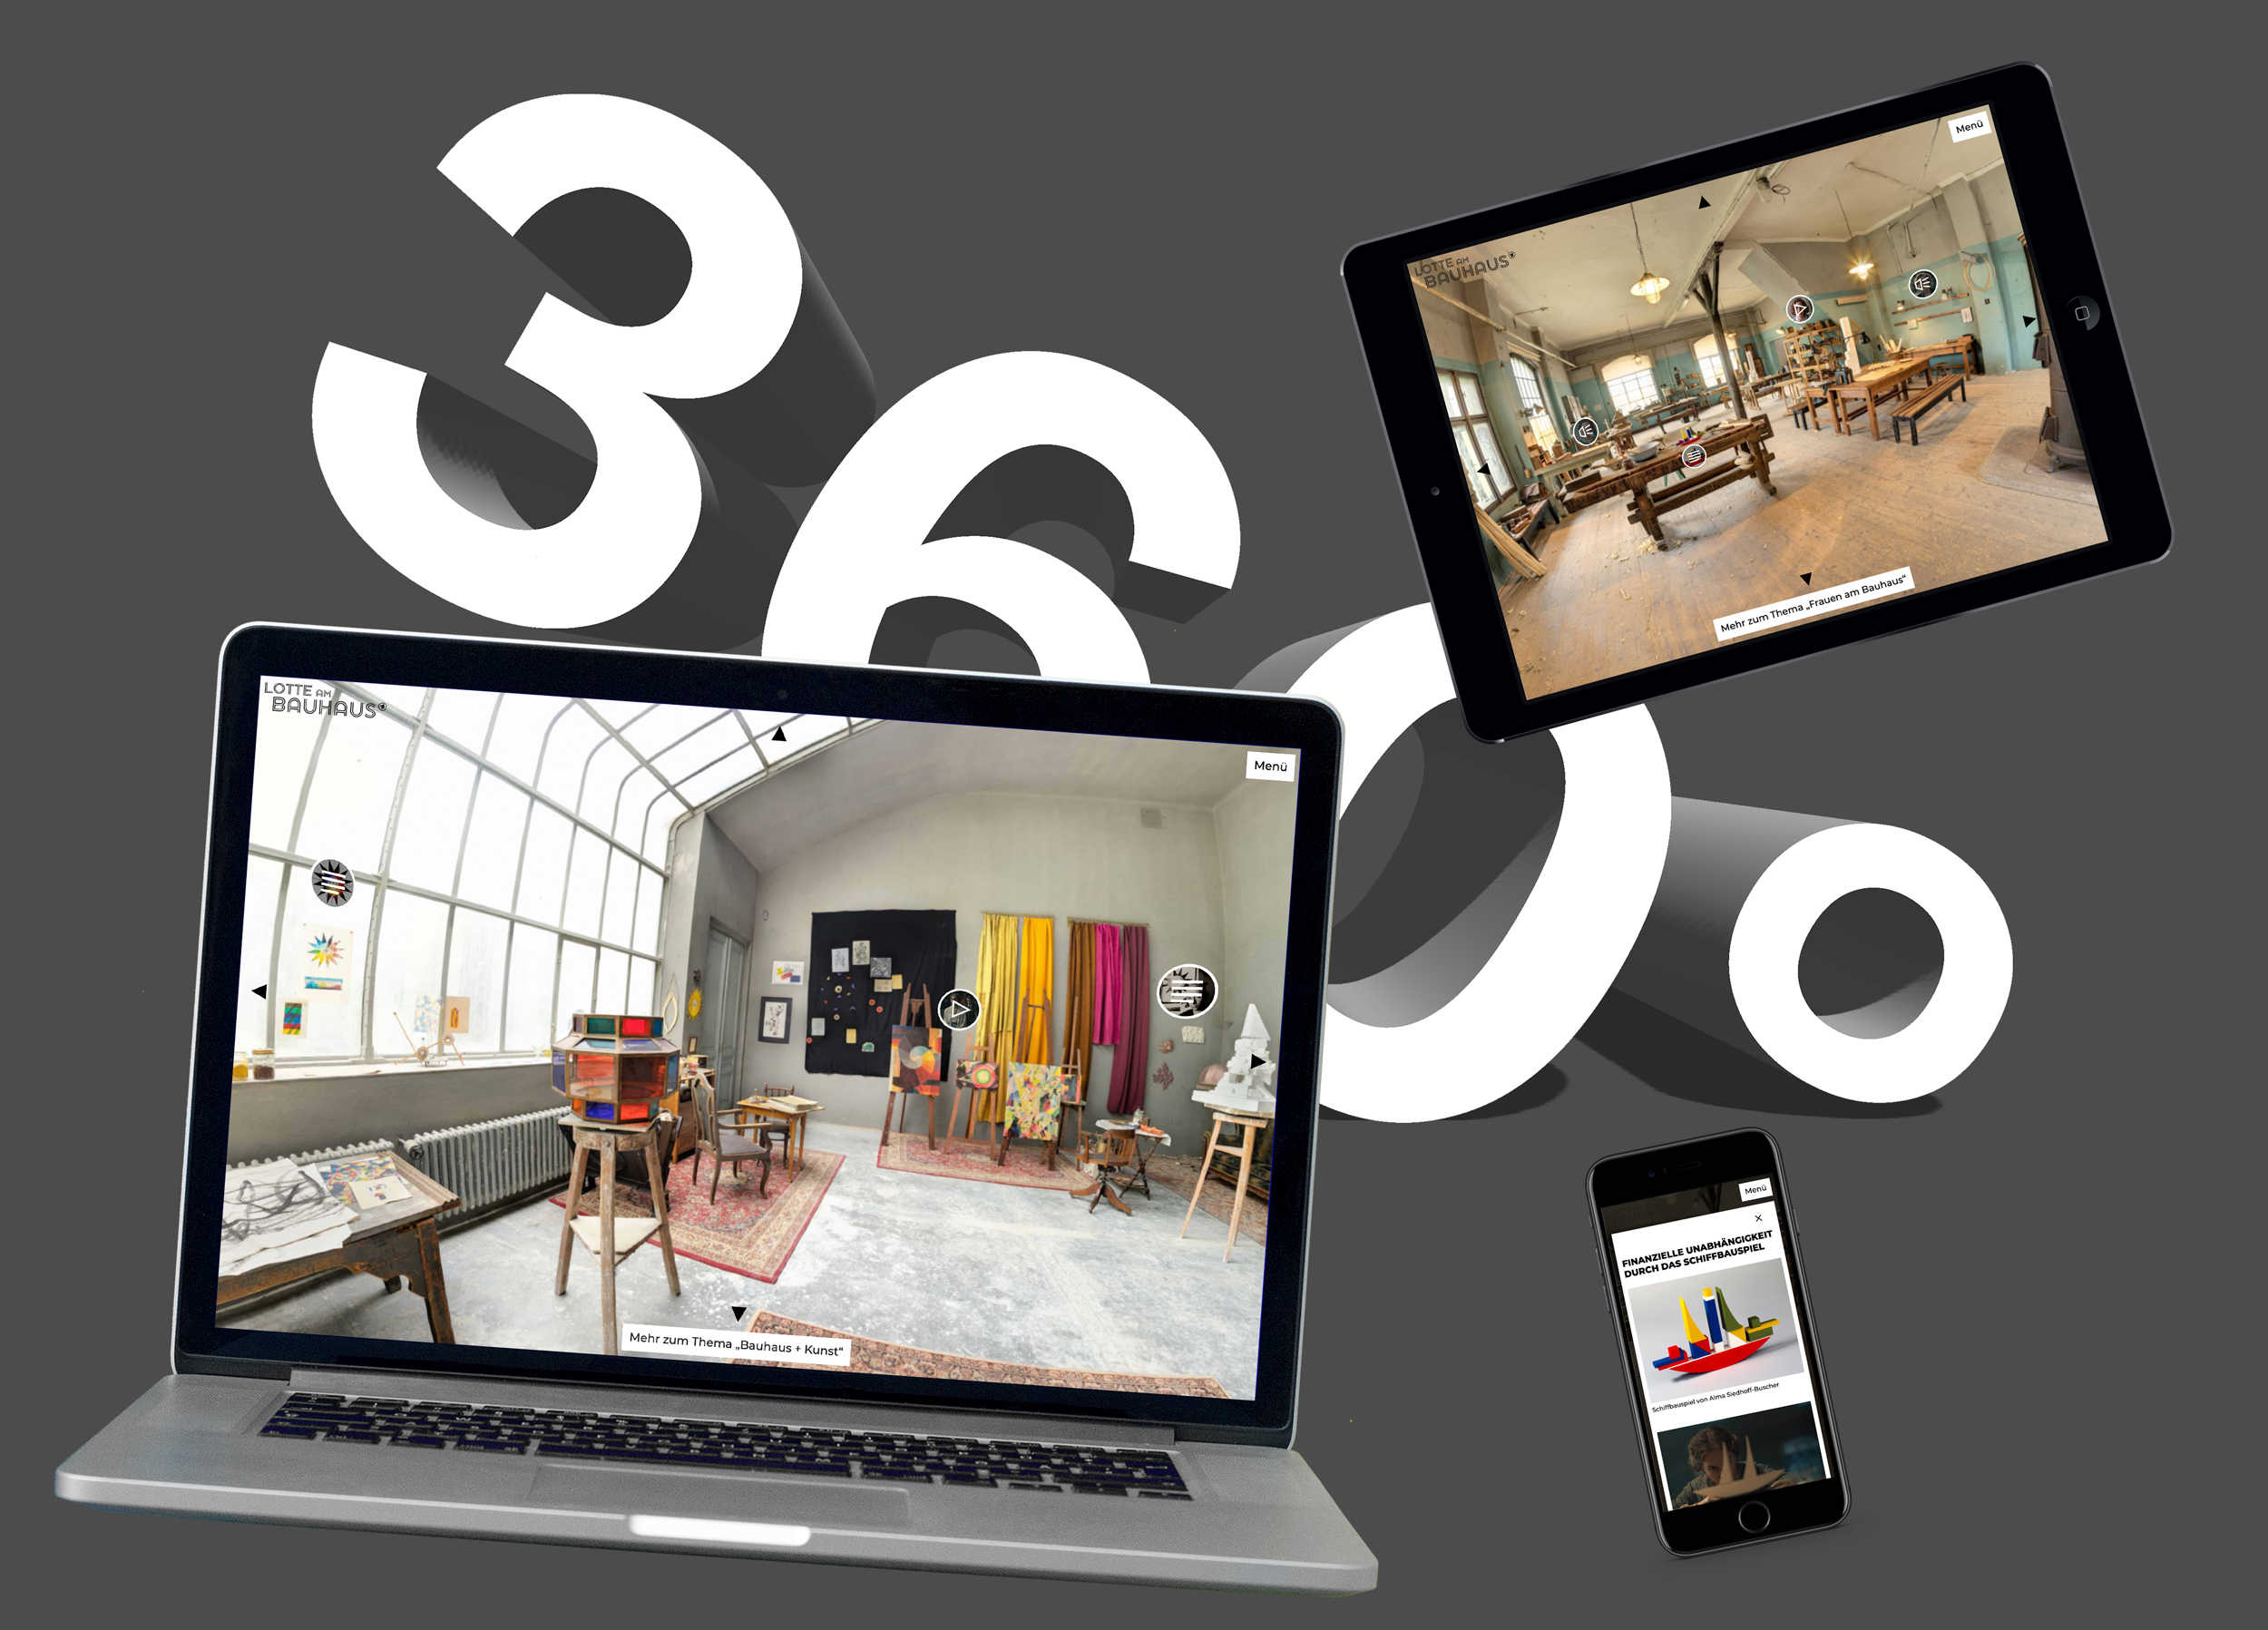 Photo of the responsive website Lotte am Bauhaus for ARD / MDR, shown on a mobile, tablet and desktop screen.